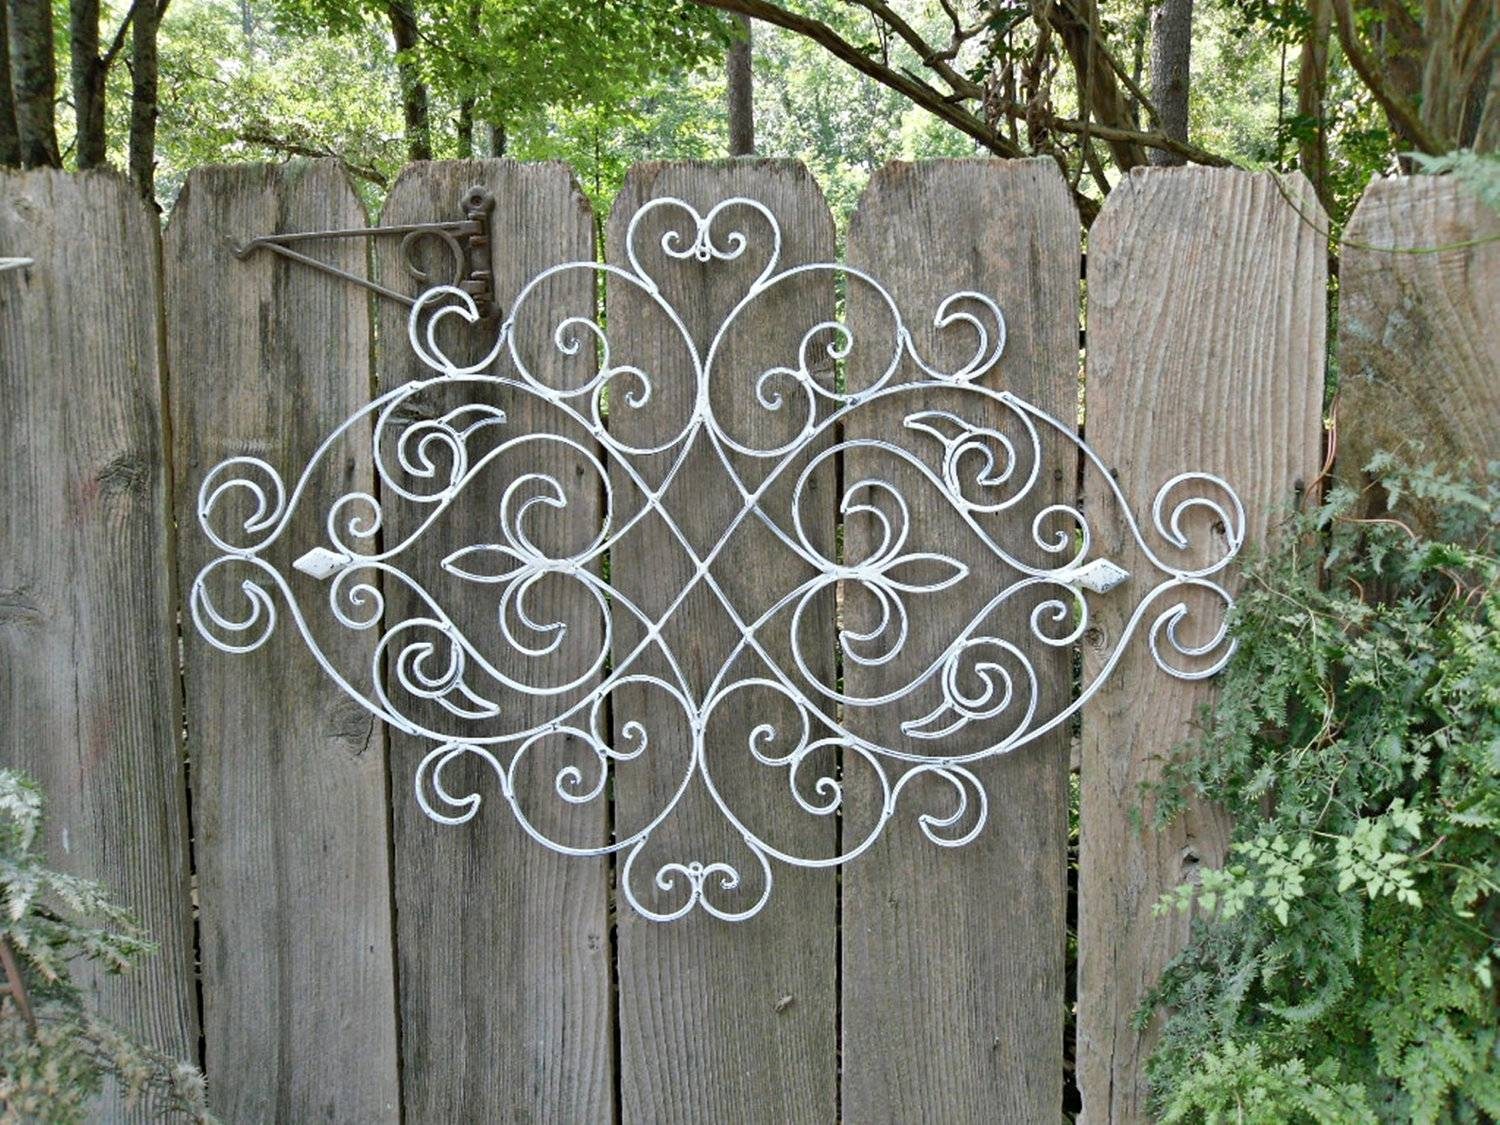 Outdoor Metal Wall Art Design Ideas | Indoor & Outdoor Decor For Latest Wrought Iron Metal Wall Art (View 8 of 20)